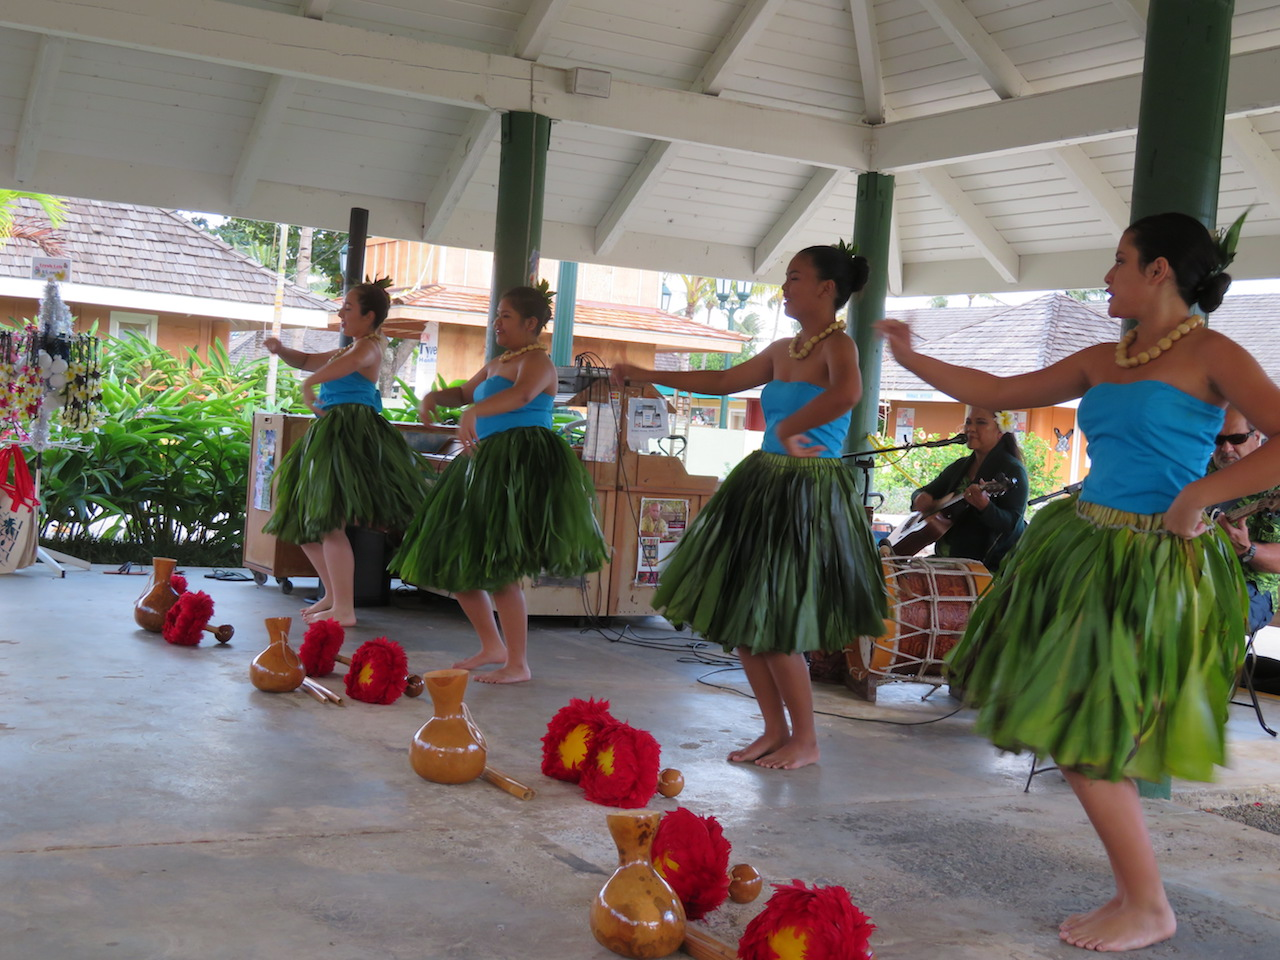 Hula dancers in Kapaa